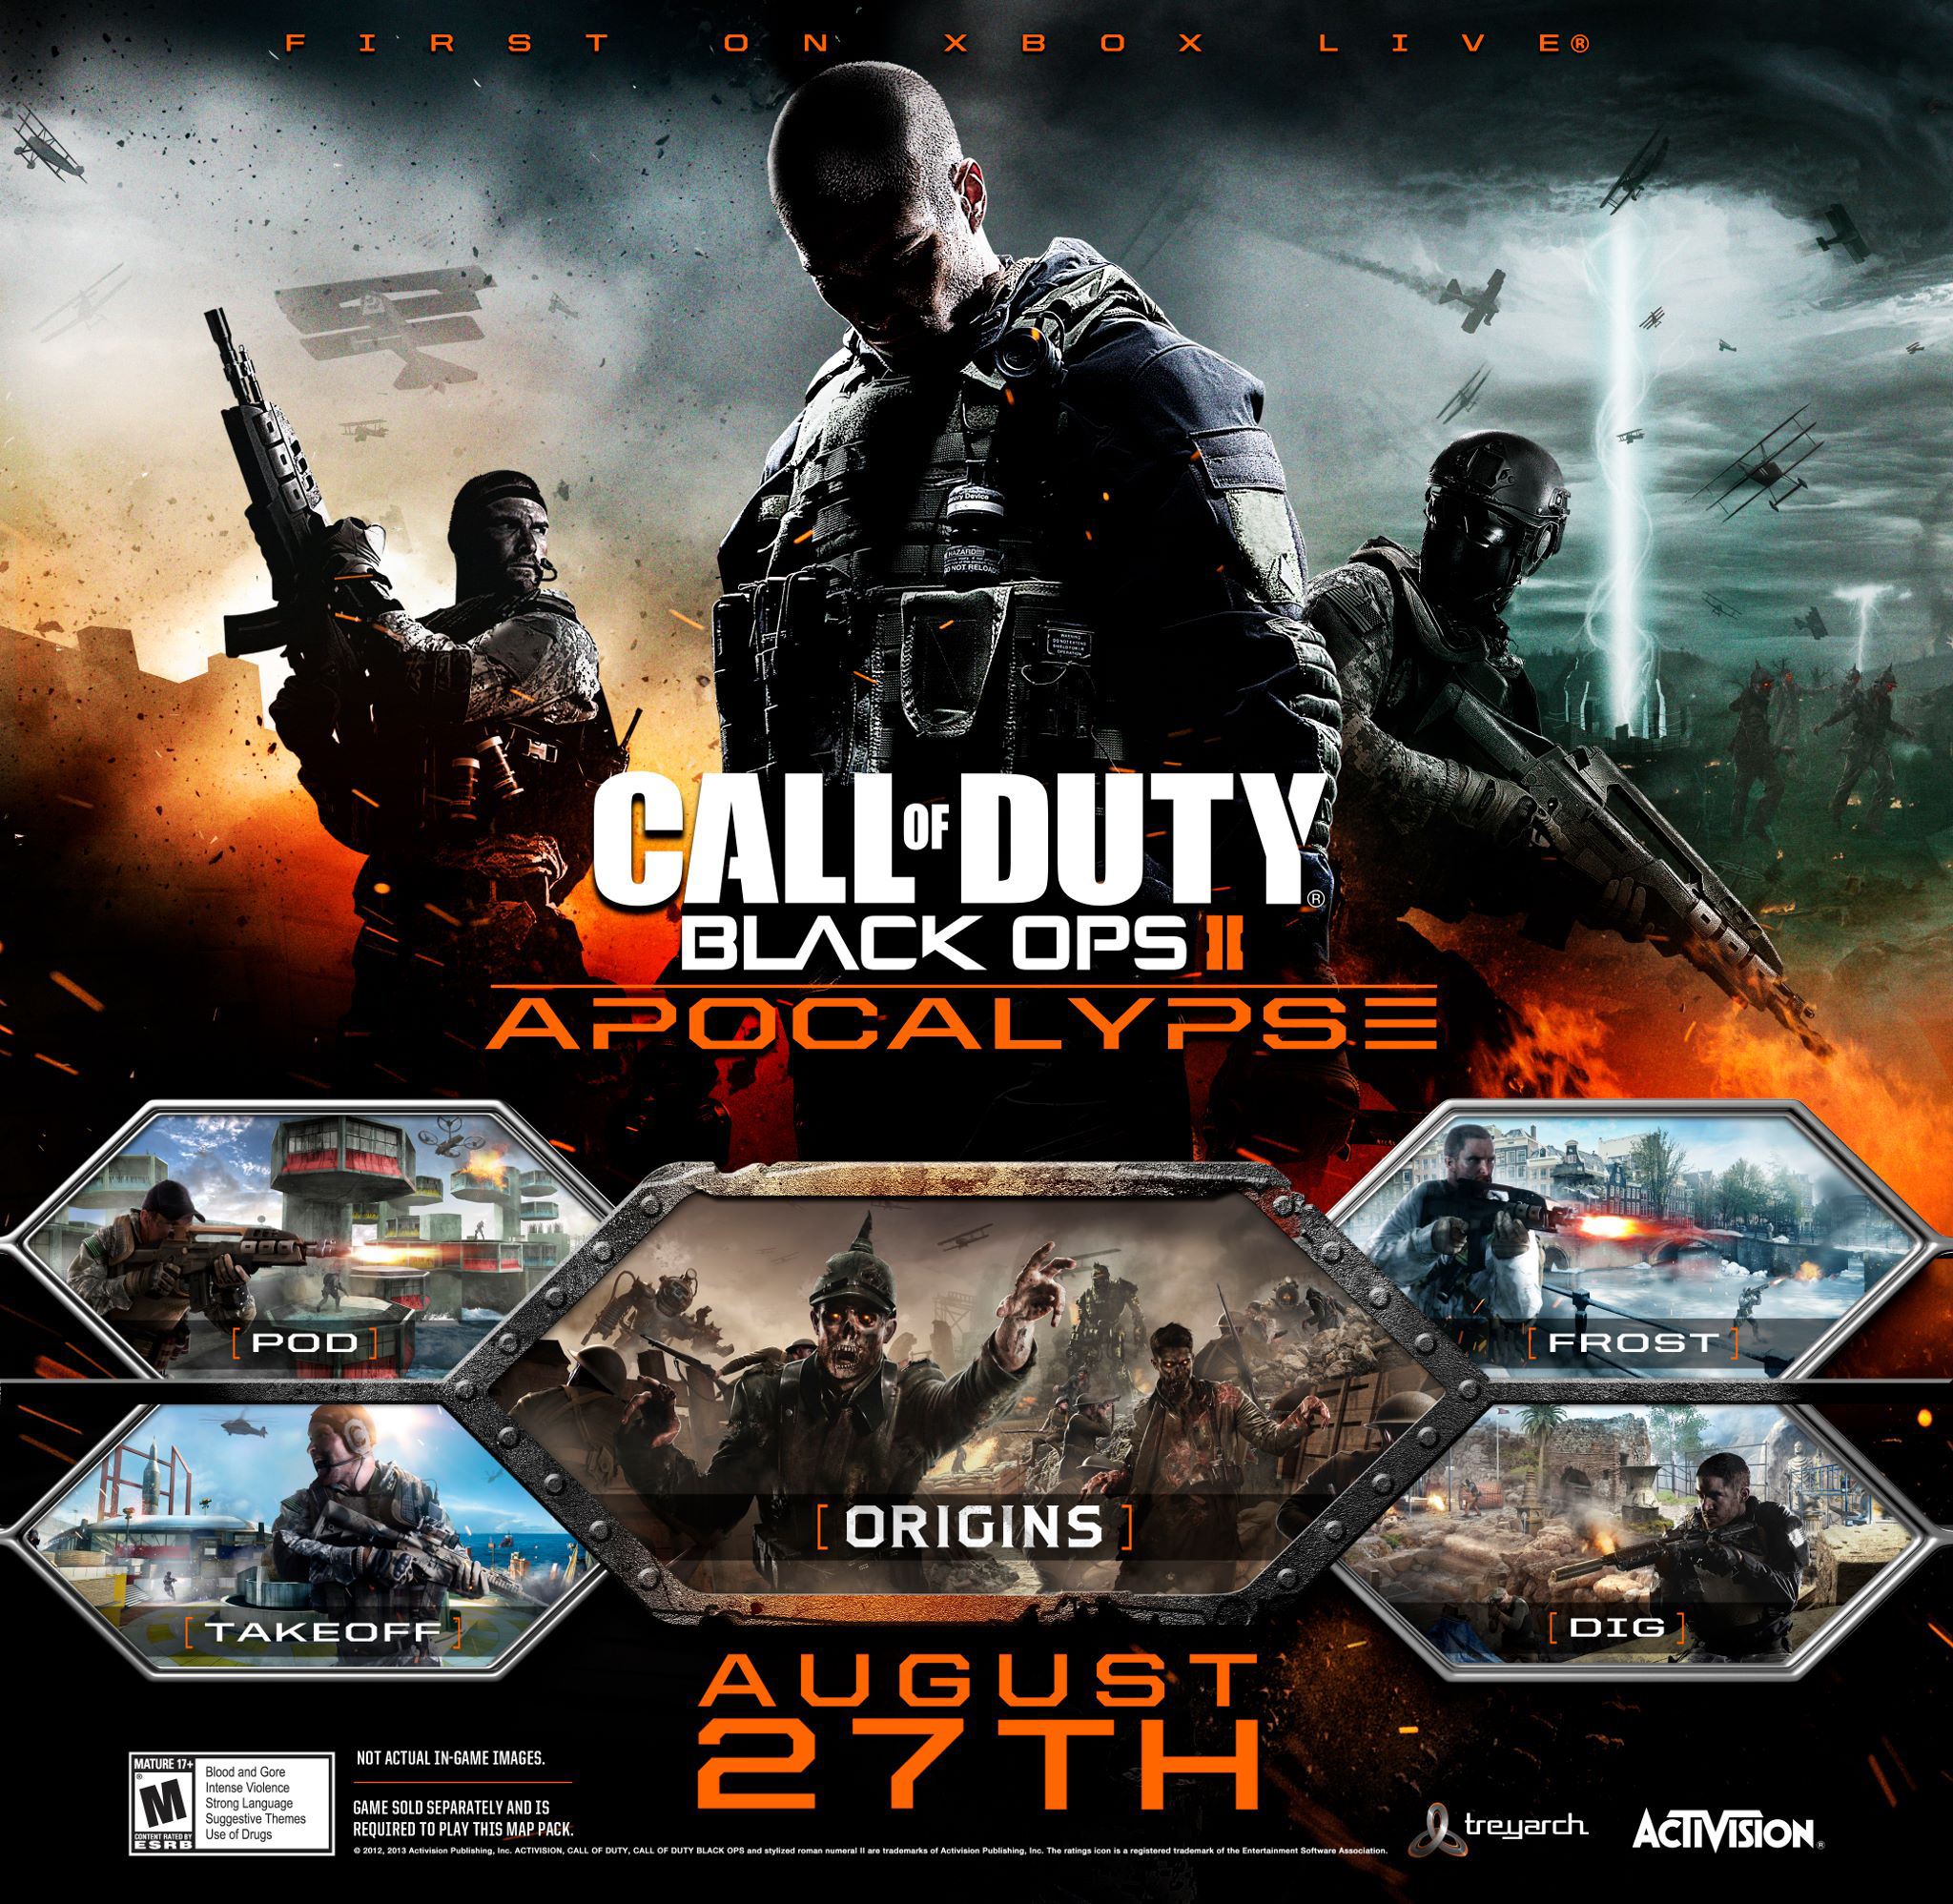 black ops 2 apocalypse map pack with Date Sortie Dlc Black Ops 2 Apocalypse 87030 on 56070 further 1 furthermore File Medical Tent additionally Watch likewise 23579 Call Of Duty Black Ops 2 Dlc Wraps Up With Apocalypse Brings New Zombies C aign Origins.